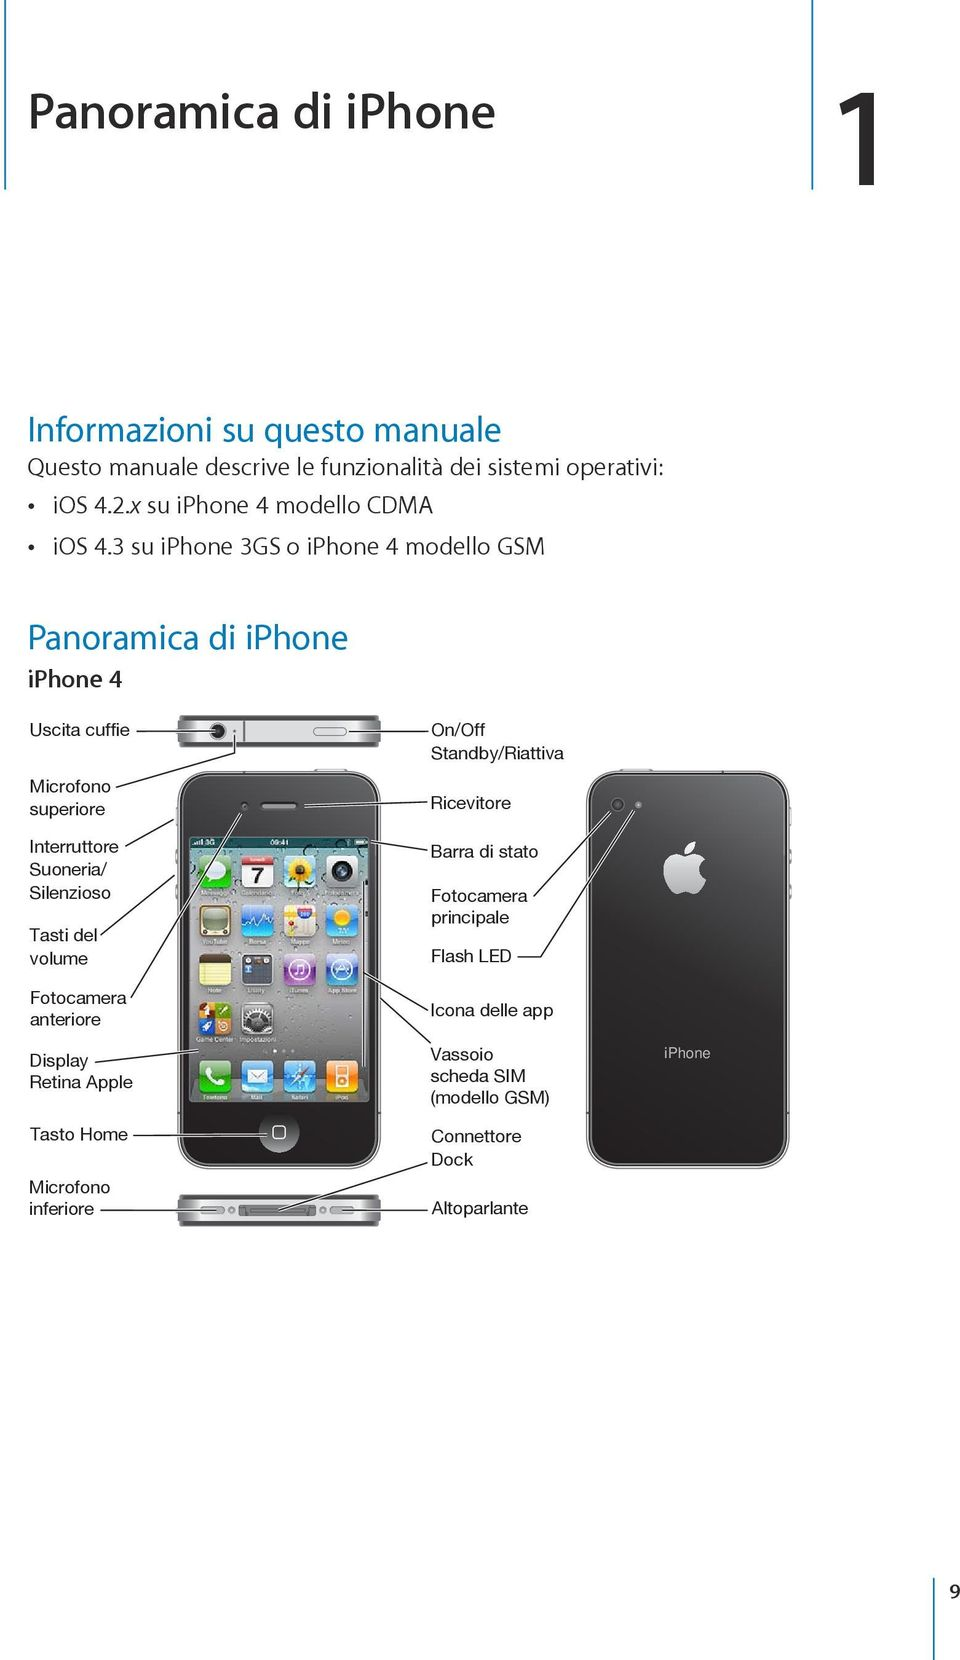 3 su iphone 3GS o iphone 4 modello GSM Panoramica di iphone iphone 4 Uscita cuffie Microfono superiore Interruttore Suoneria/ Silenzioso